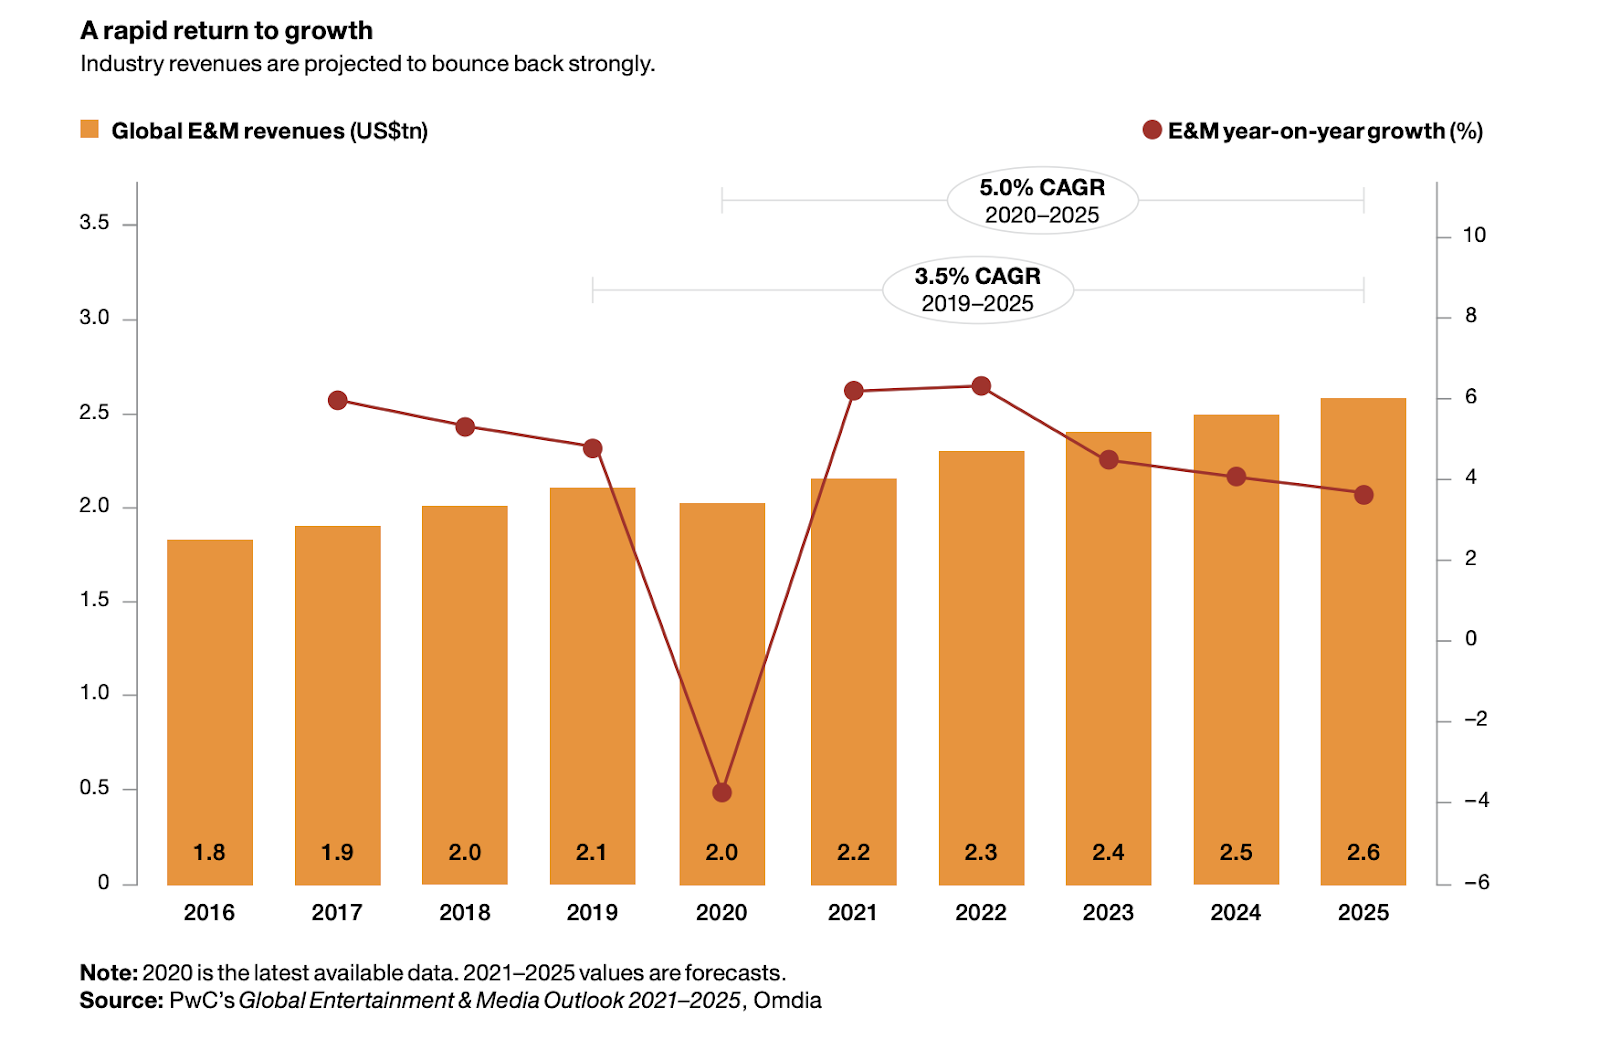 this graph shows that industry revenues are predicted to bounce back strongly